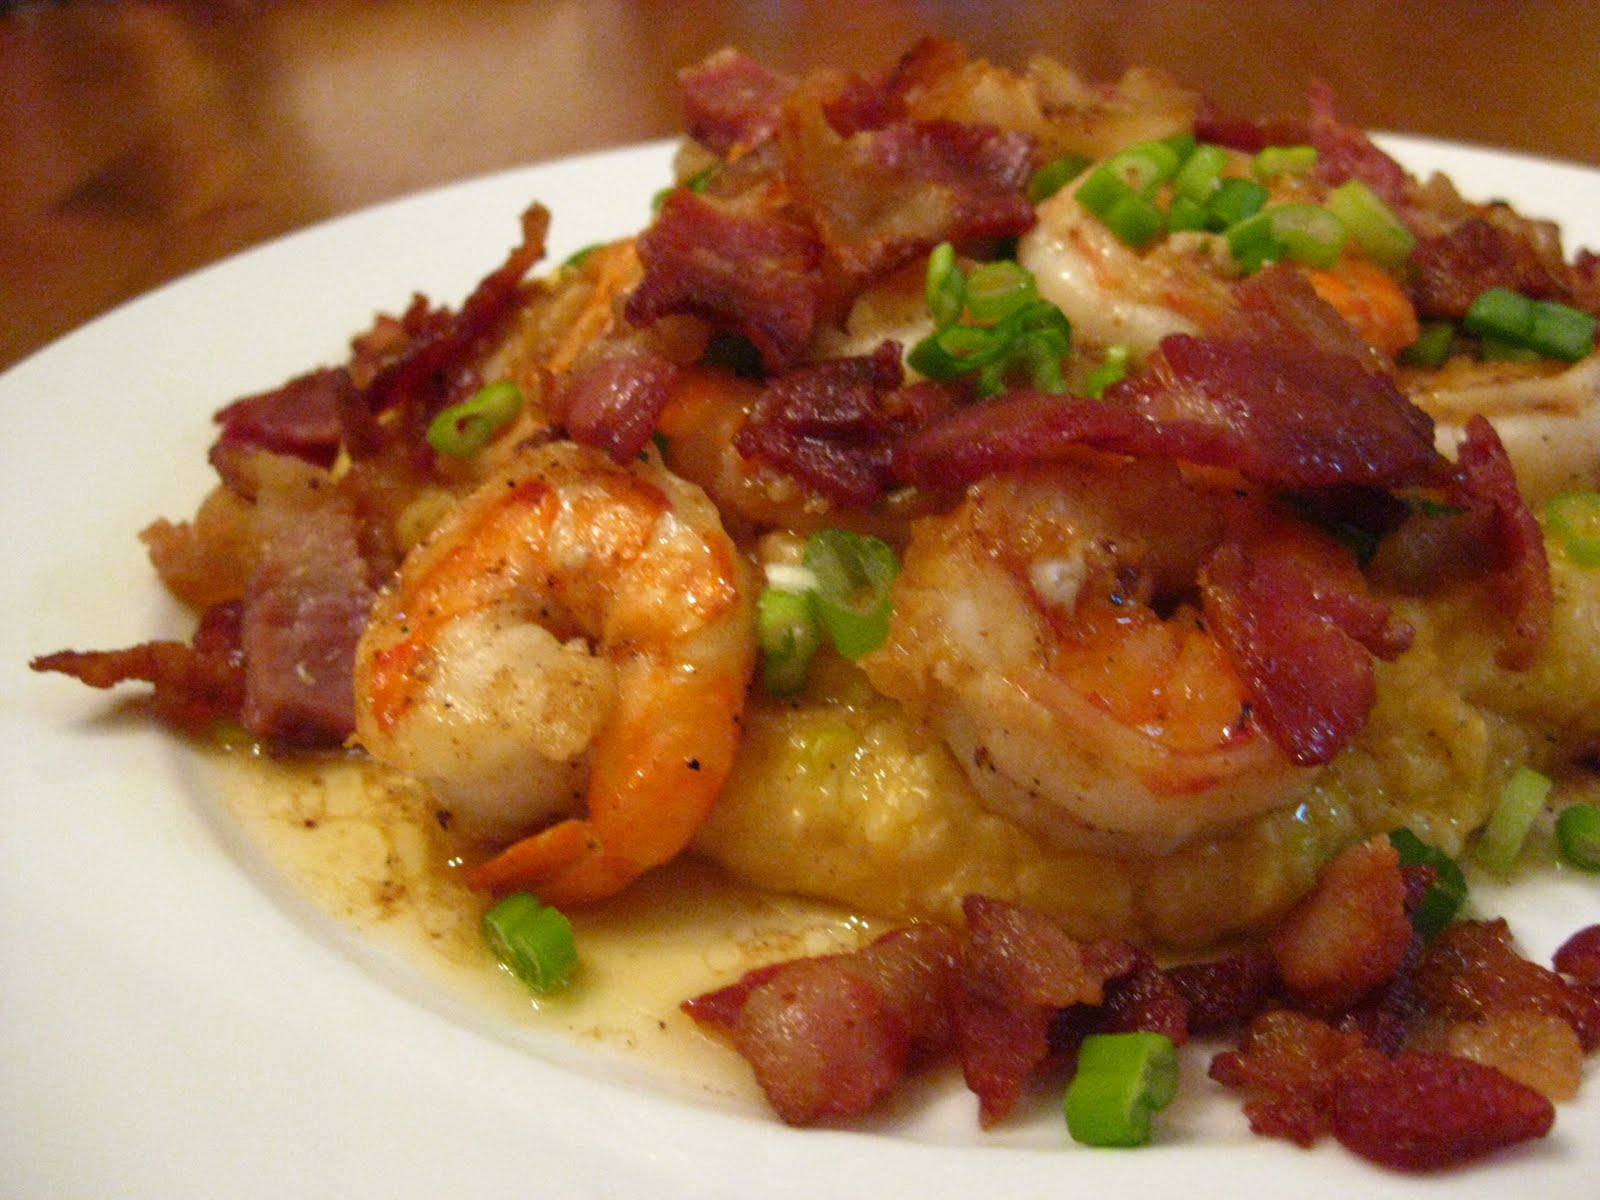 Taste of Home Cooking: Shrimp and Grits